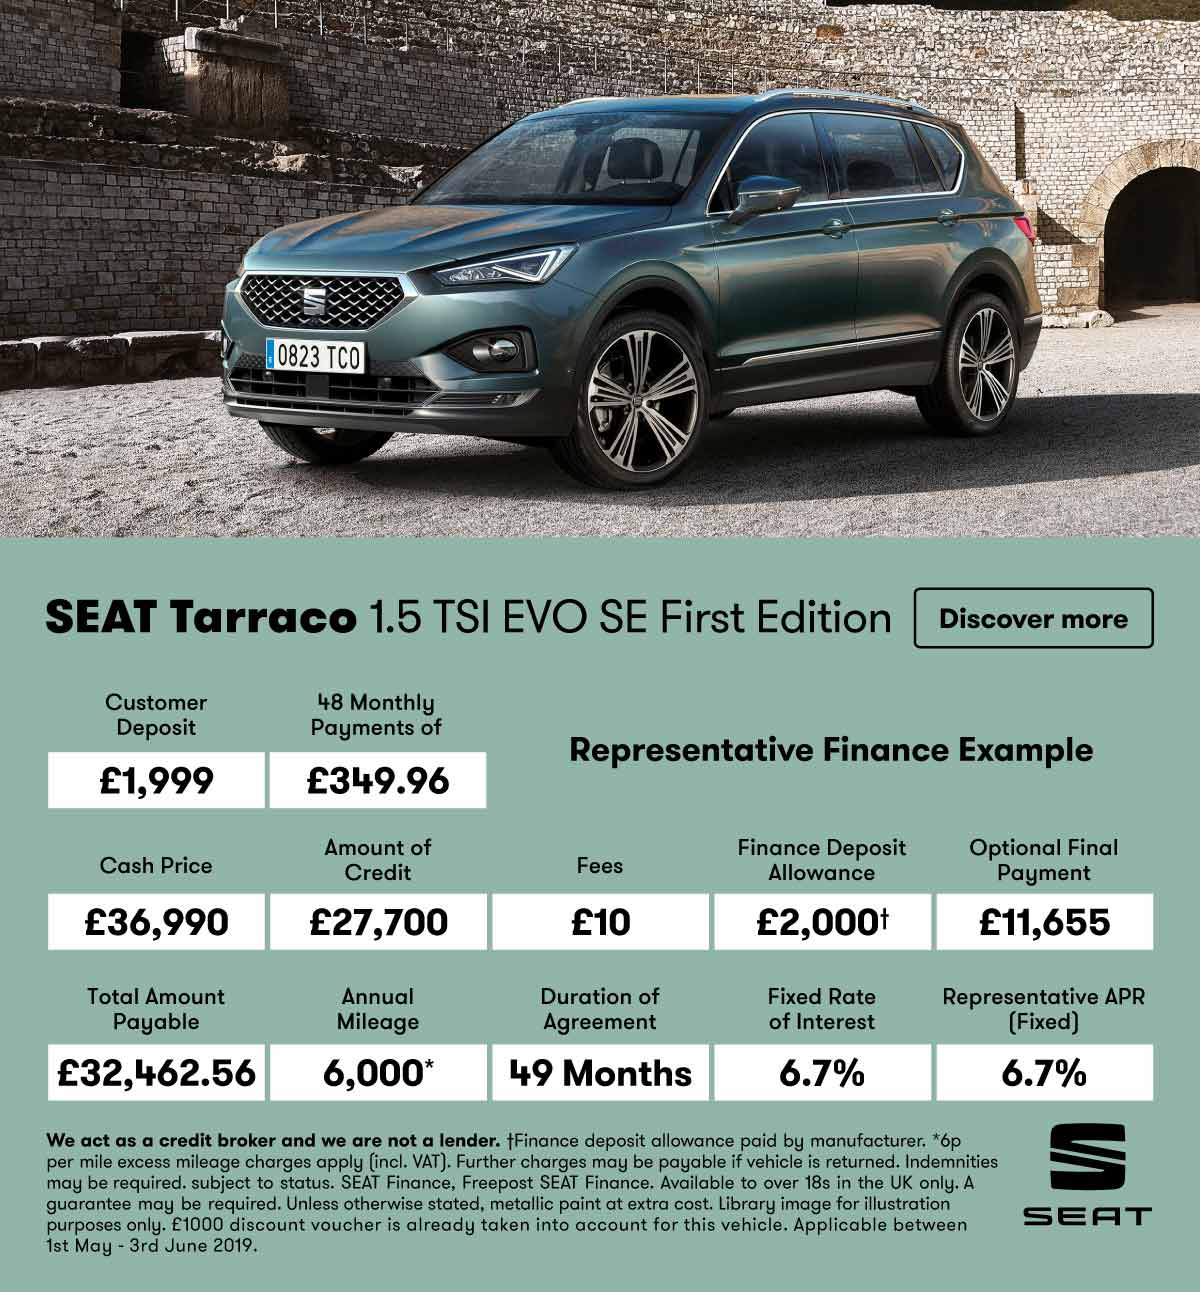 [SEAT Tarraco] SEAT Tarraco first edition 070519 Banner 1